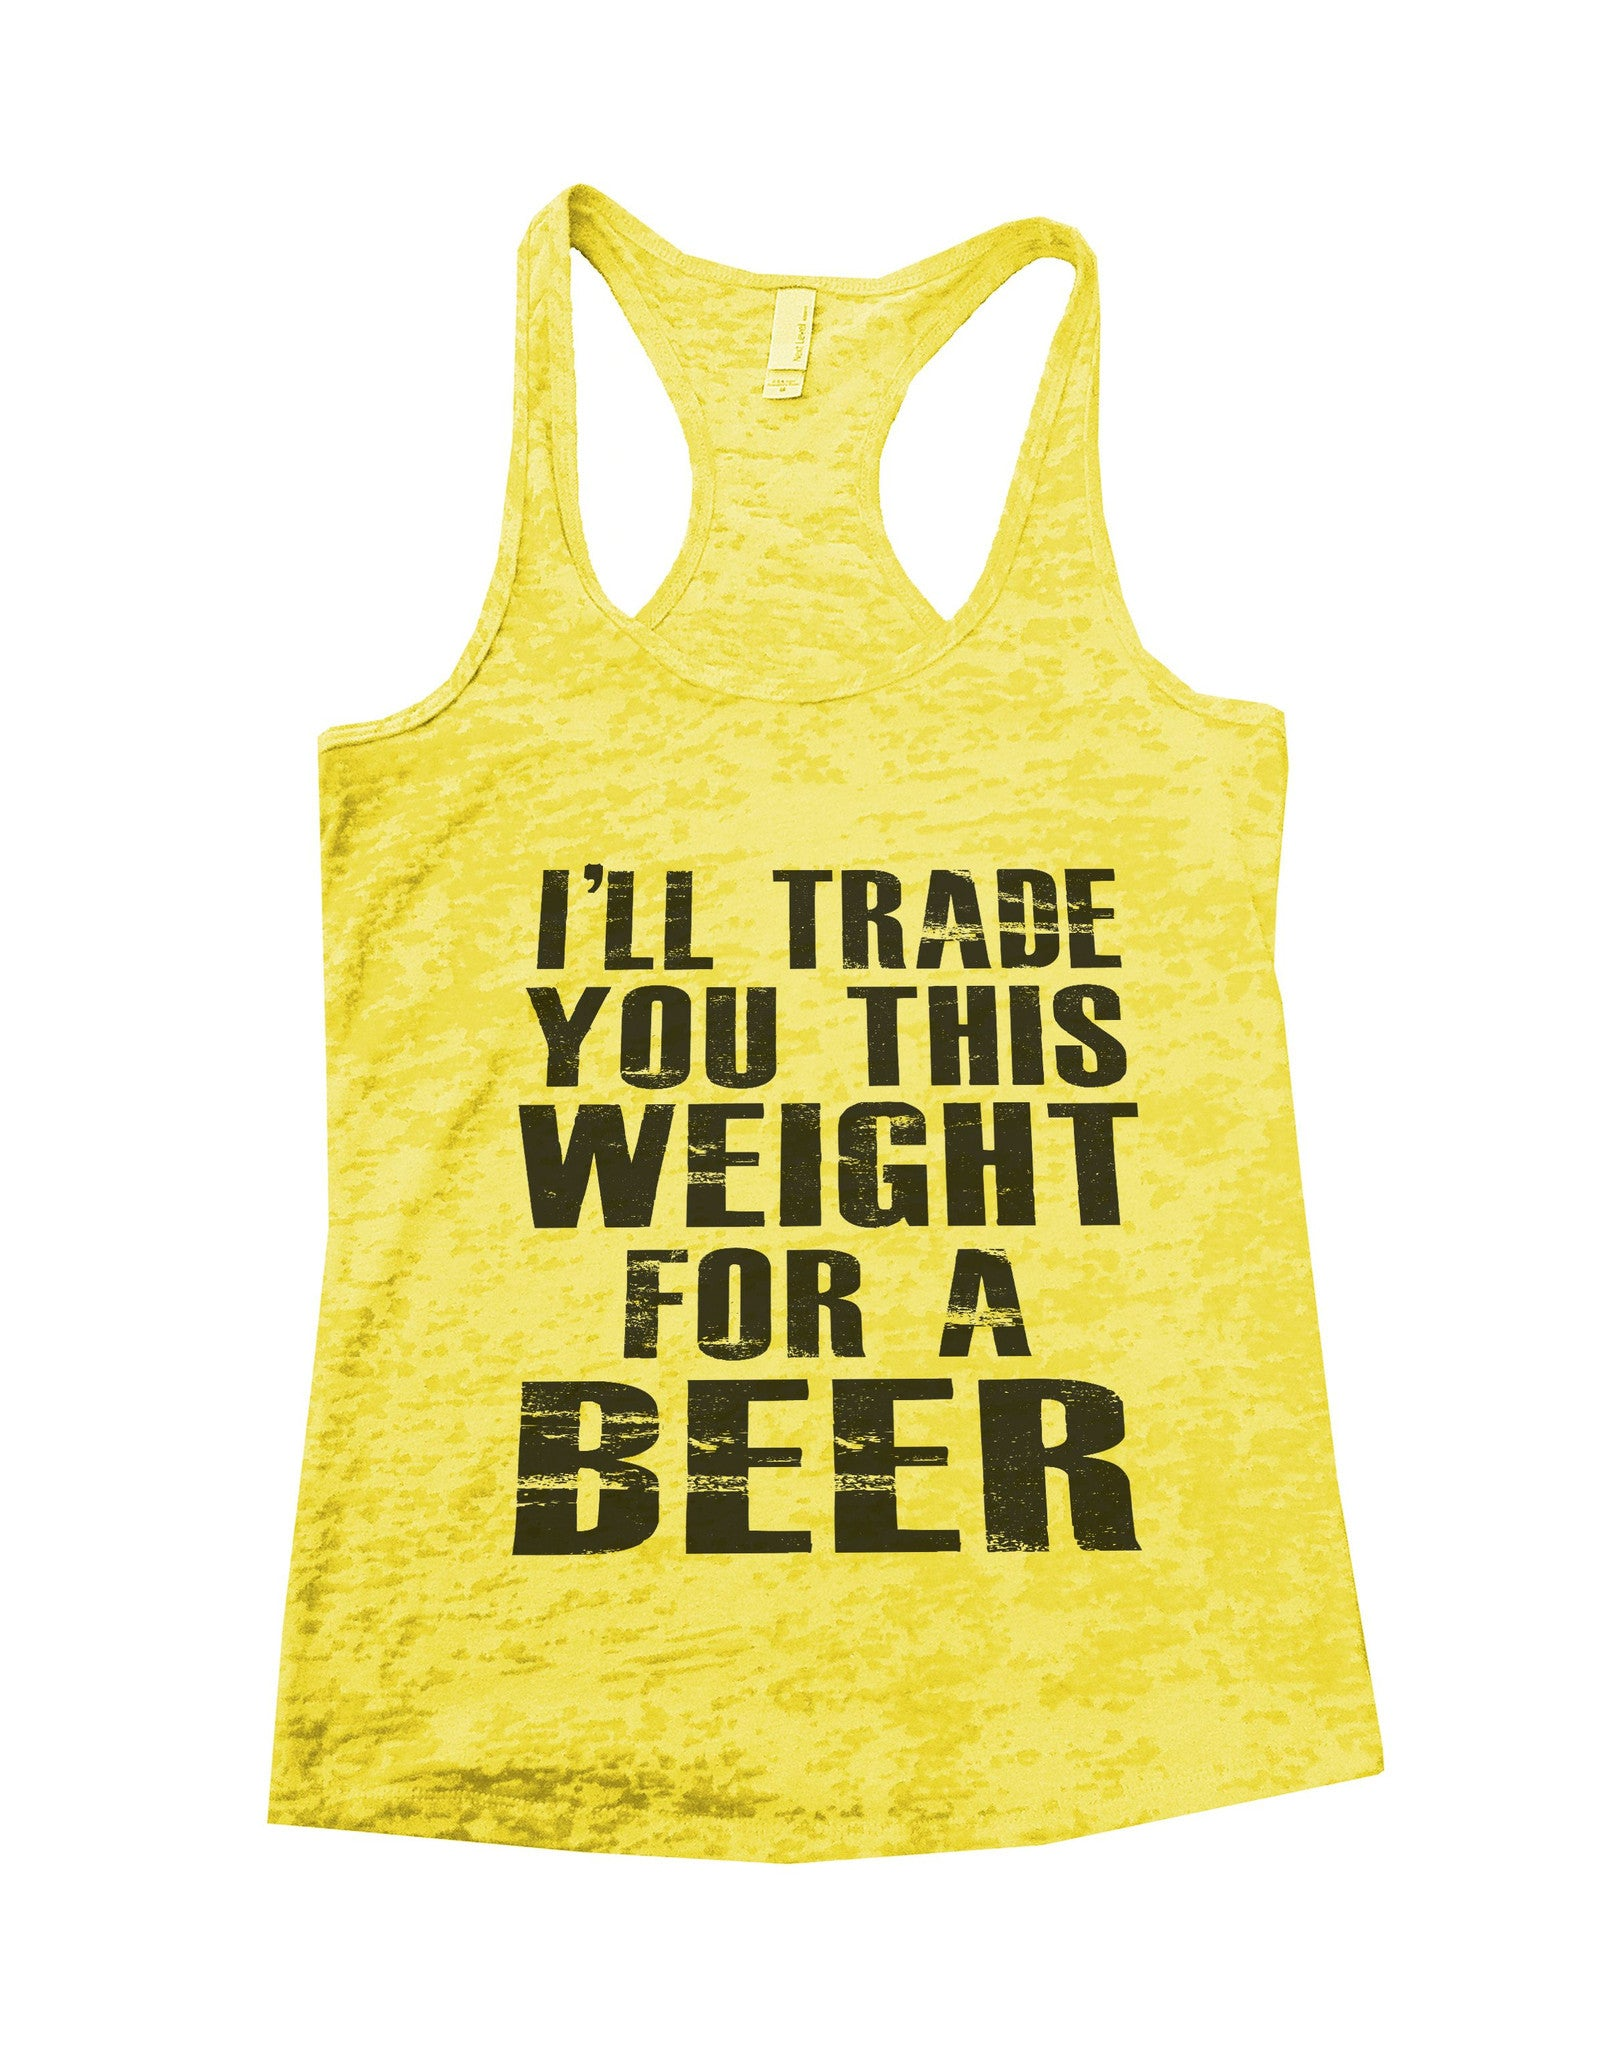 I'll Trade You This Weight For A Beer Burnout Tank Top By BurnoutTankTops.com - 628 - Funny Shirts Tank Tops Burnouts and Triblends  - 1